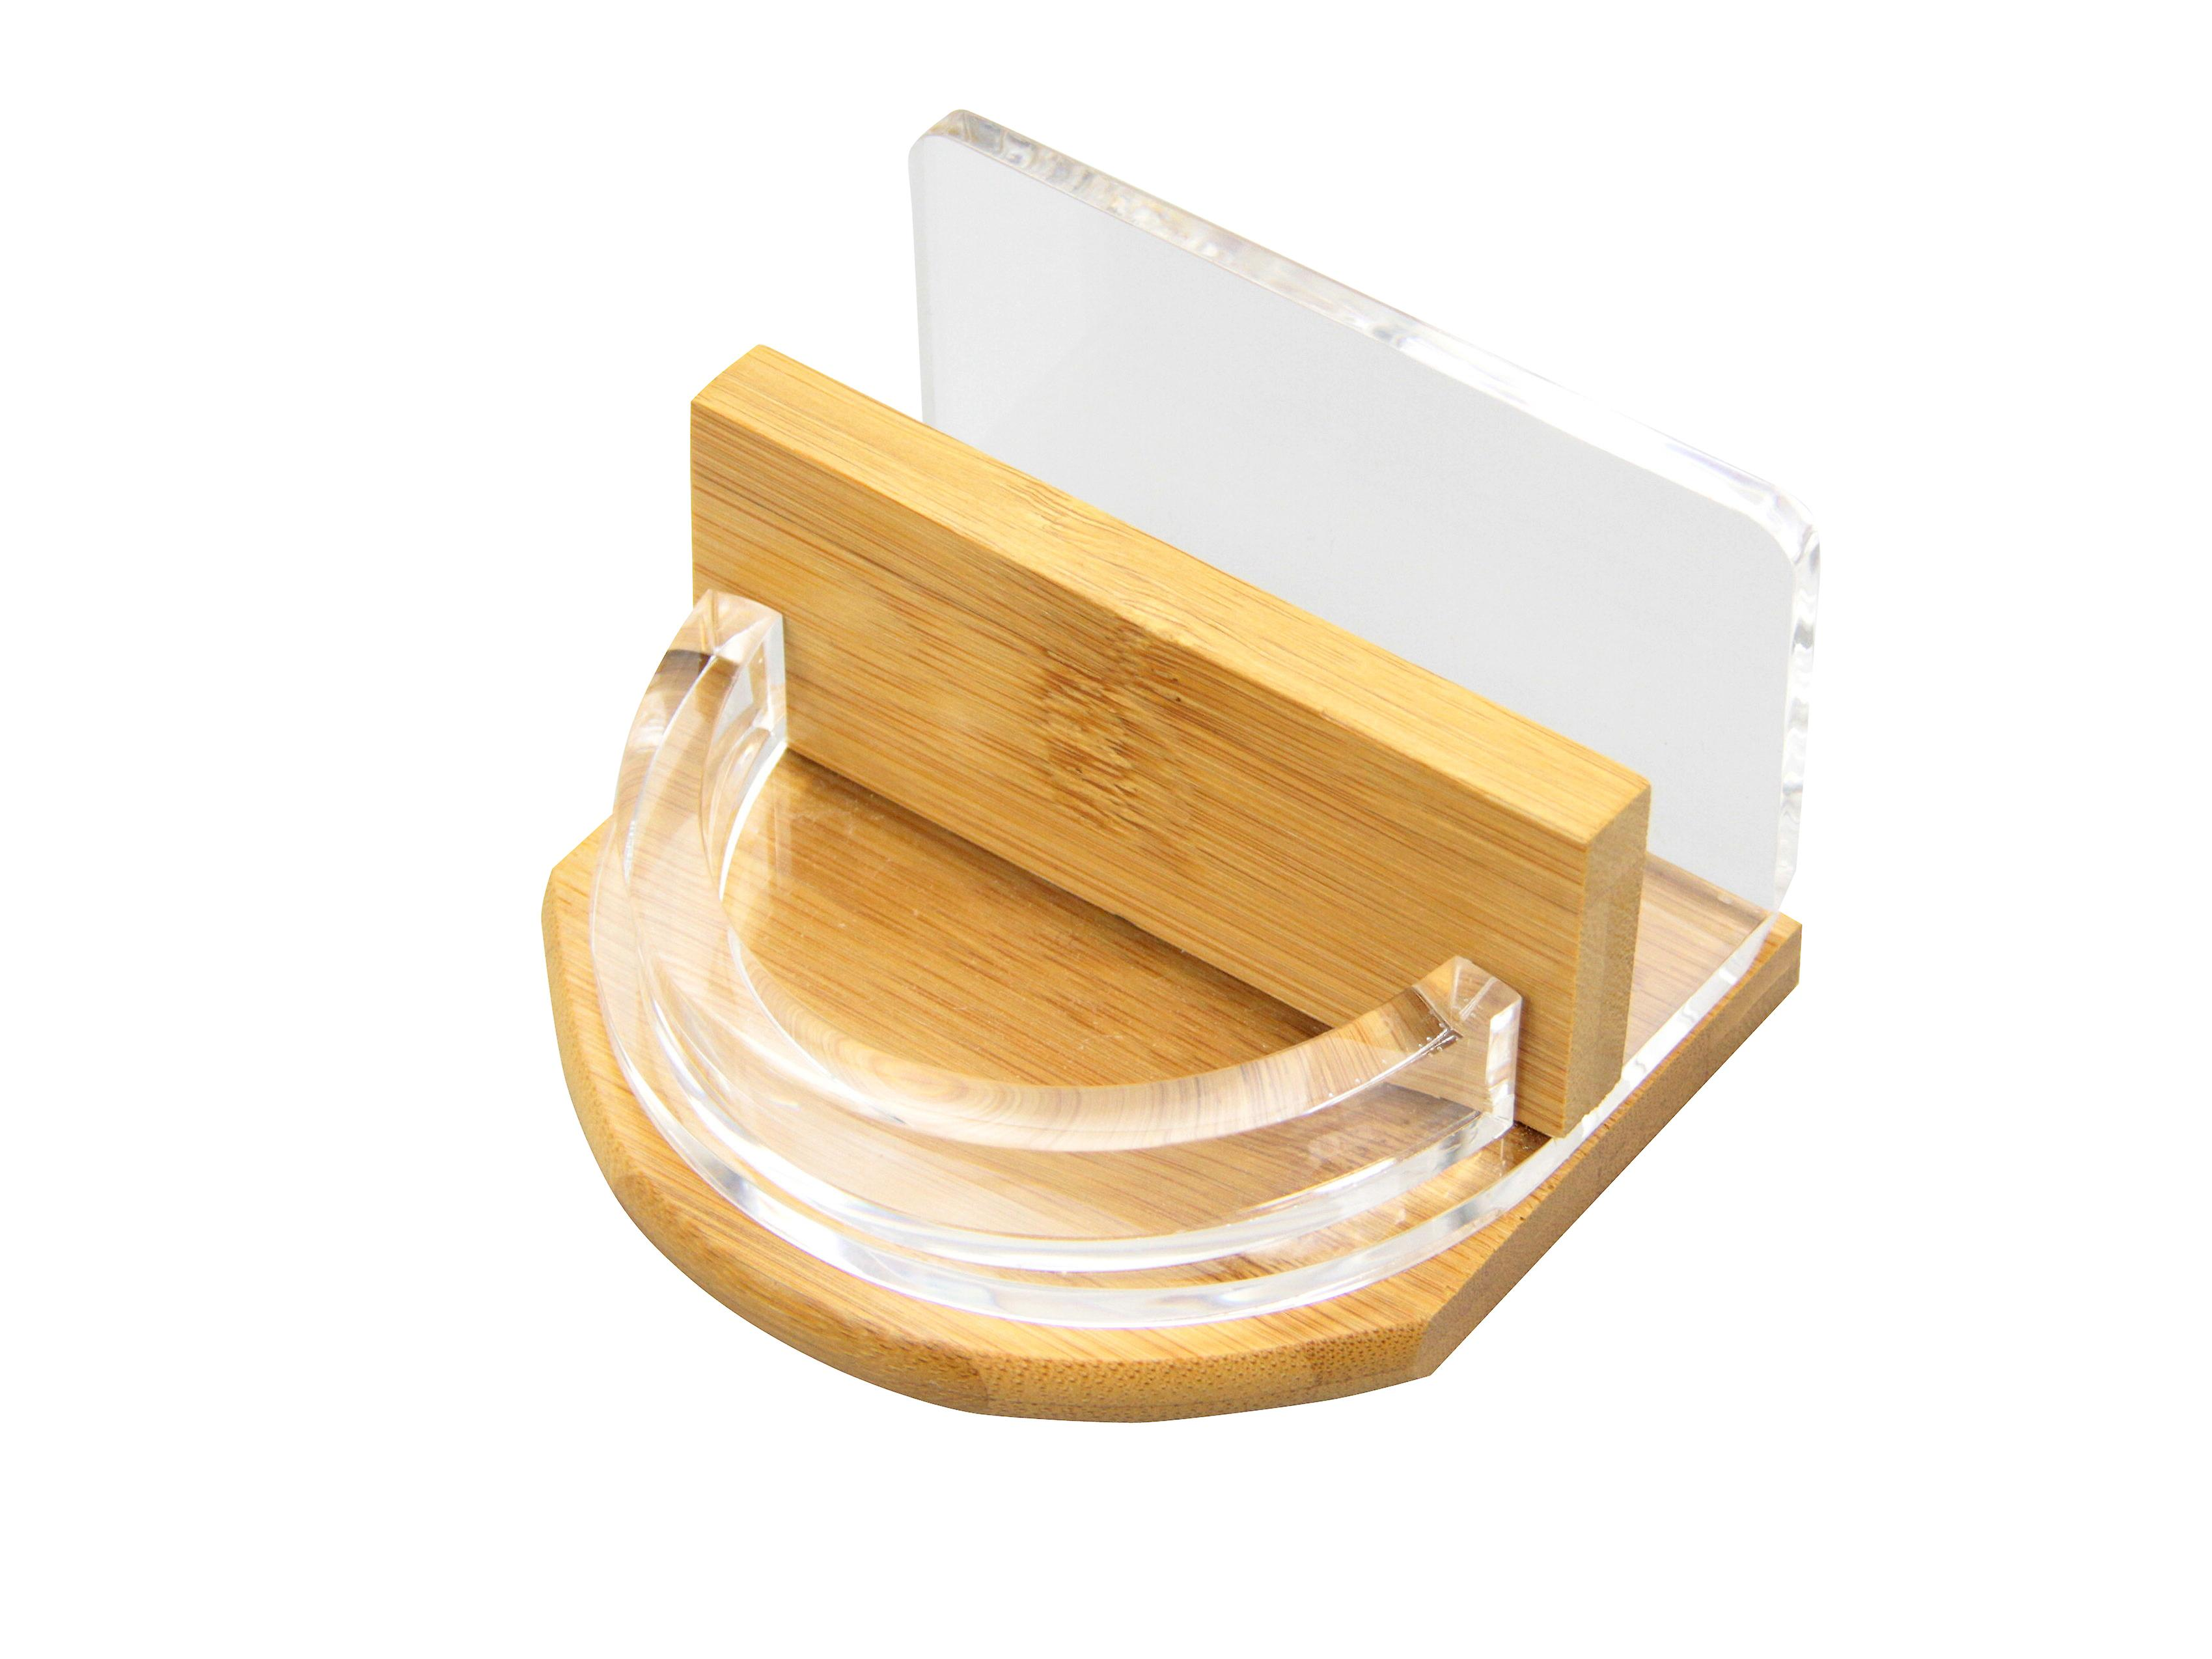 Woodquail Desk Business Cards Holder, Stationery Organiser Made of Bamboo & Acrylic